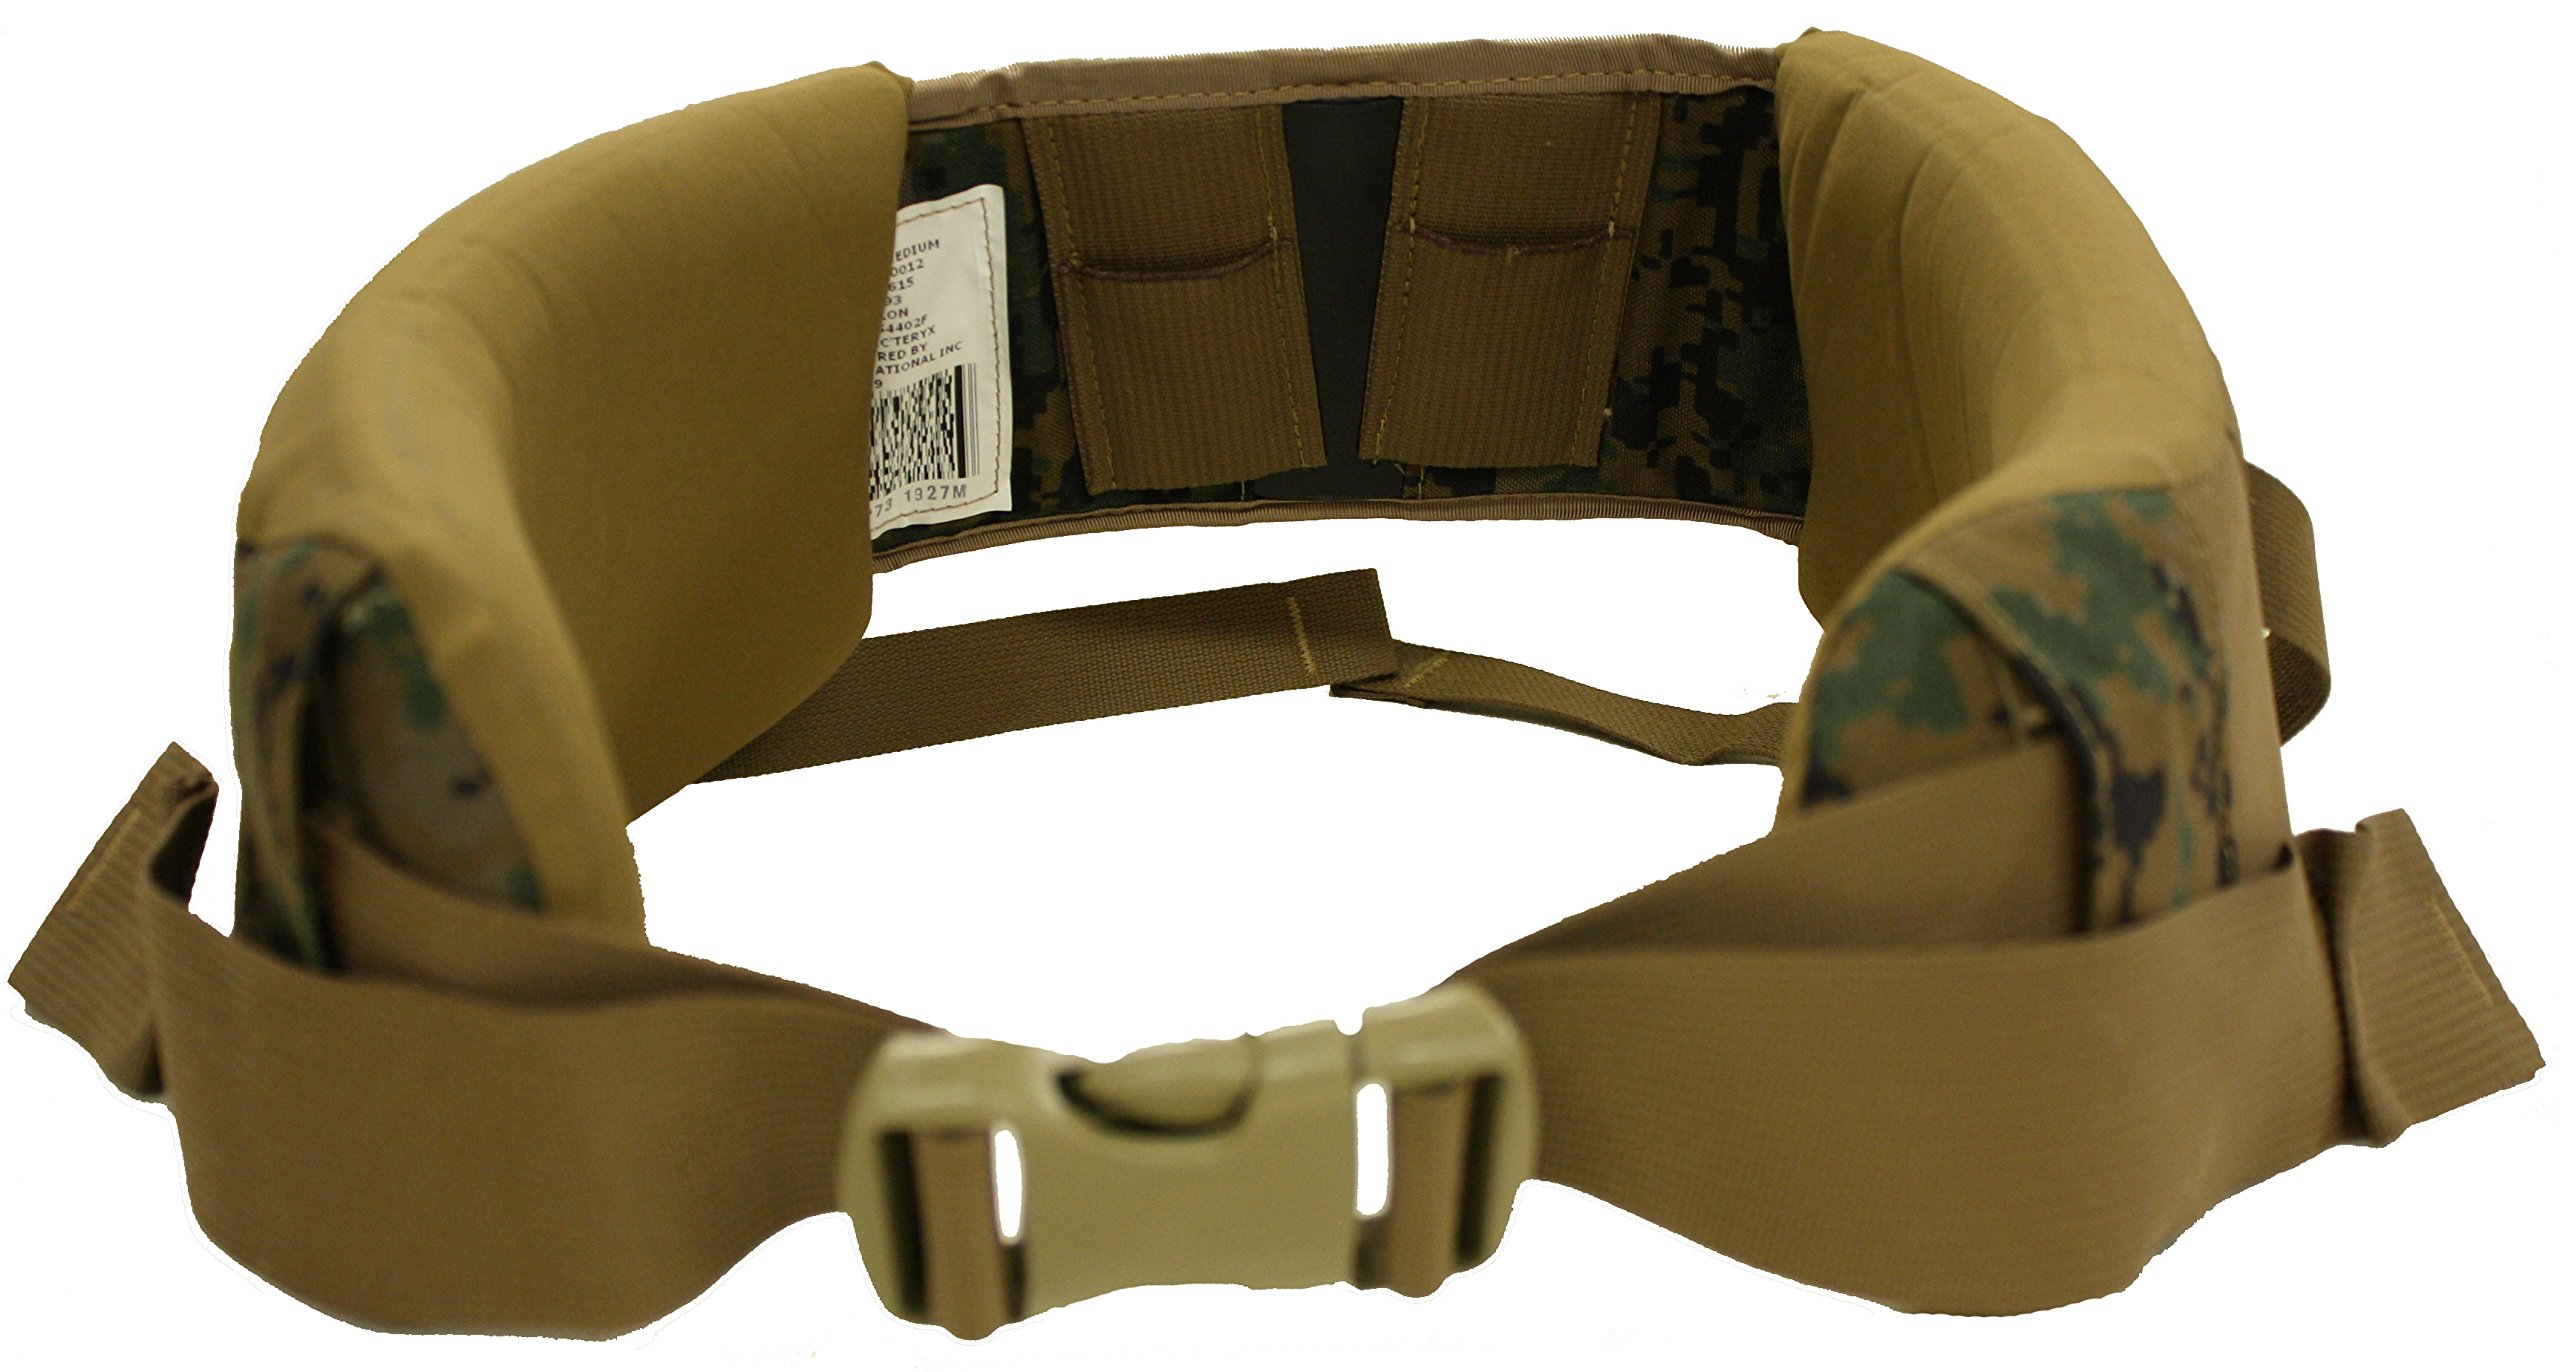 Military Outdoor Clothing Previously Issued US GI Marpat Hip Belt, OD Green, One Size